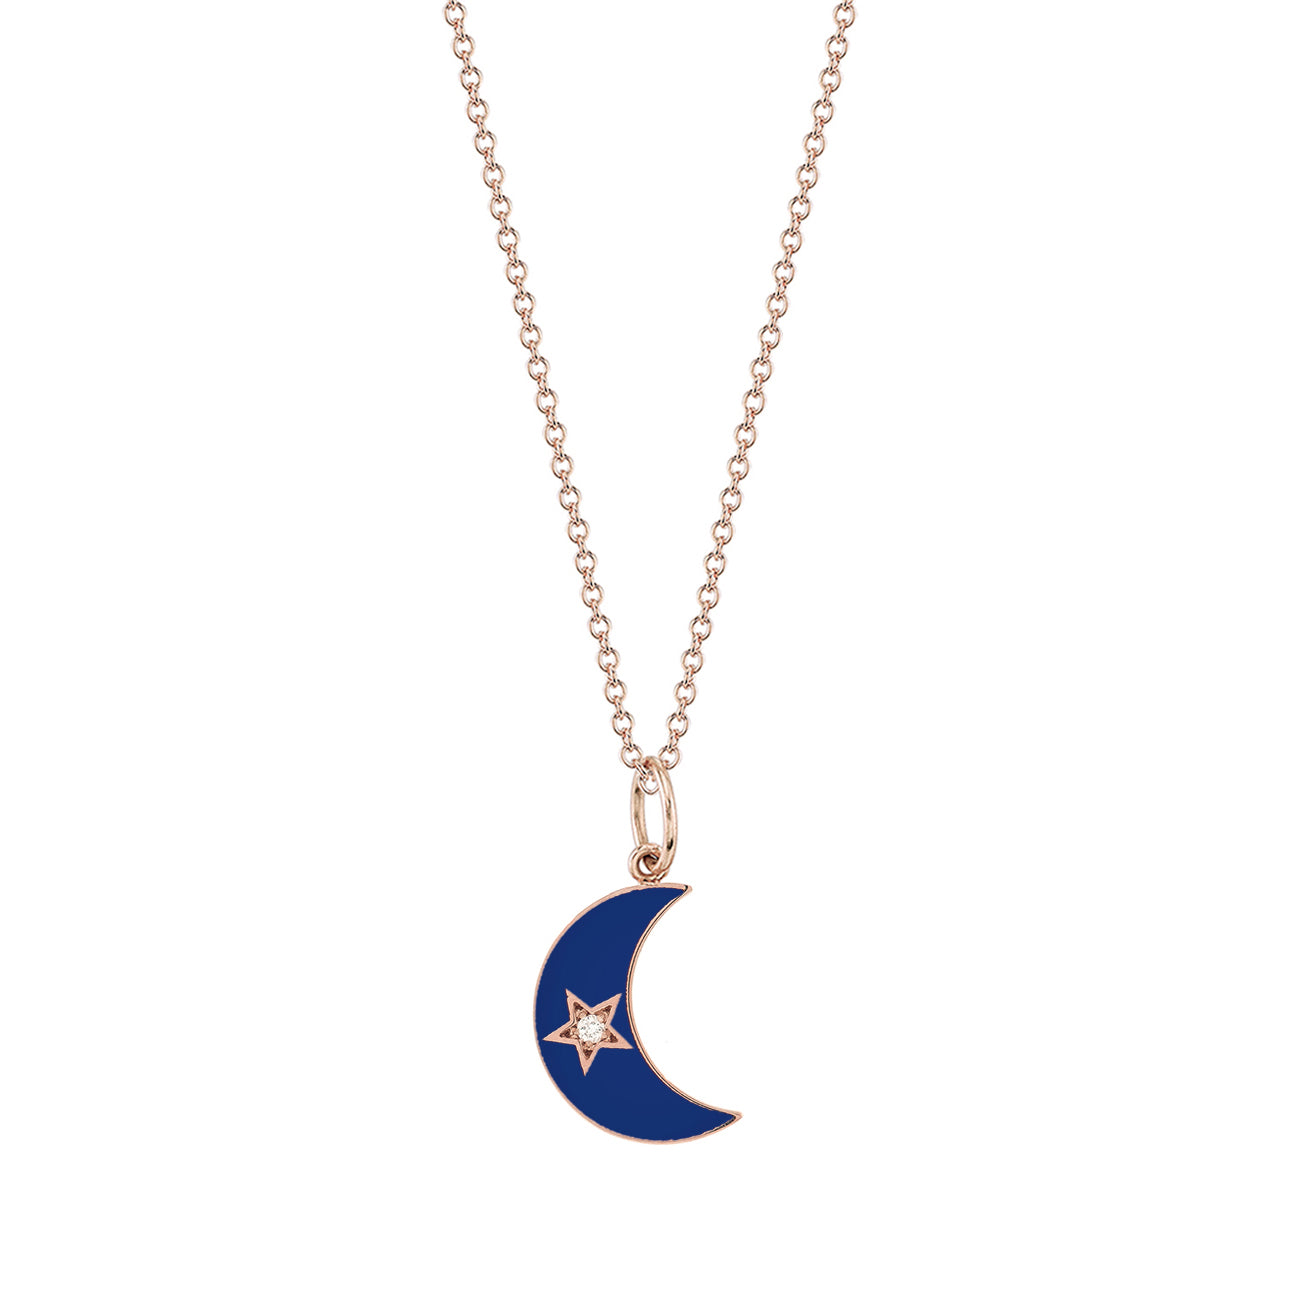 Enamel Crescent Star Moon Necklace - Andrea Fohrman - Necklaces | Broken English Jewelry